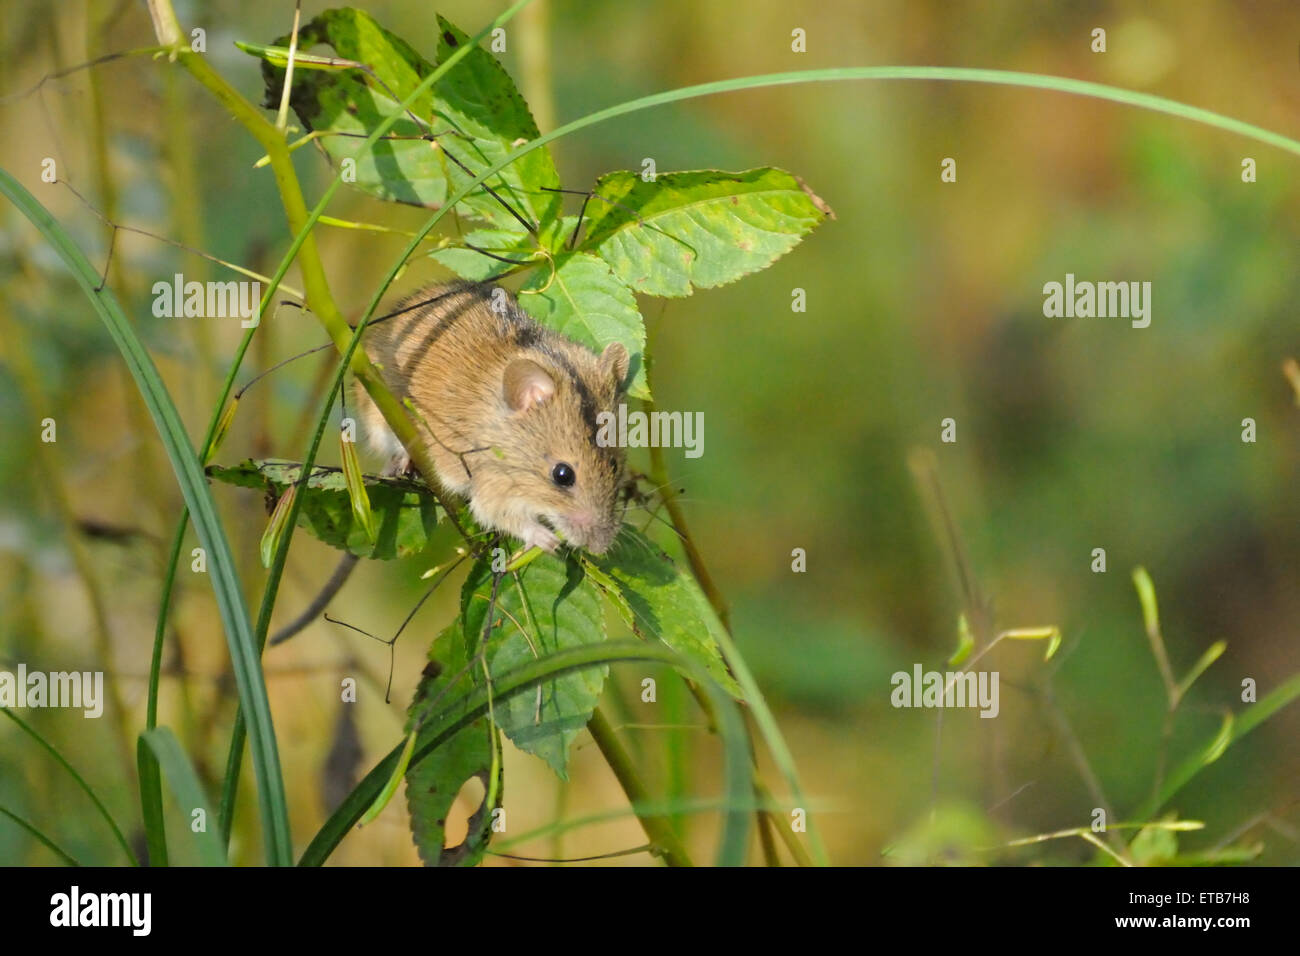 Striped Field Mouse on Touch-me-not plant - Stock Image